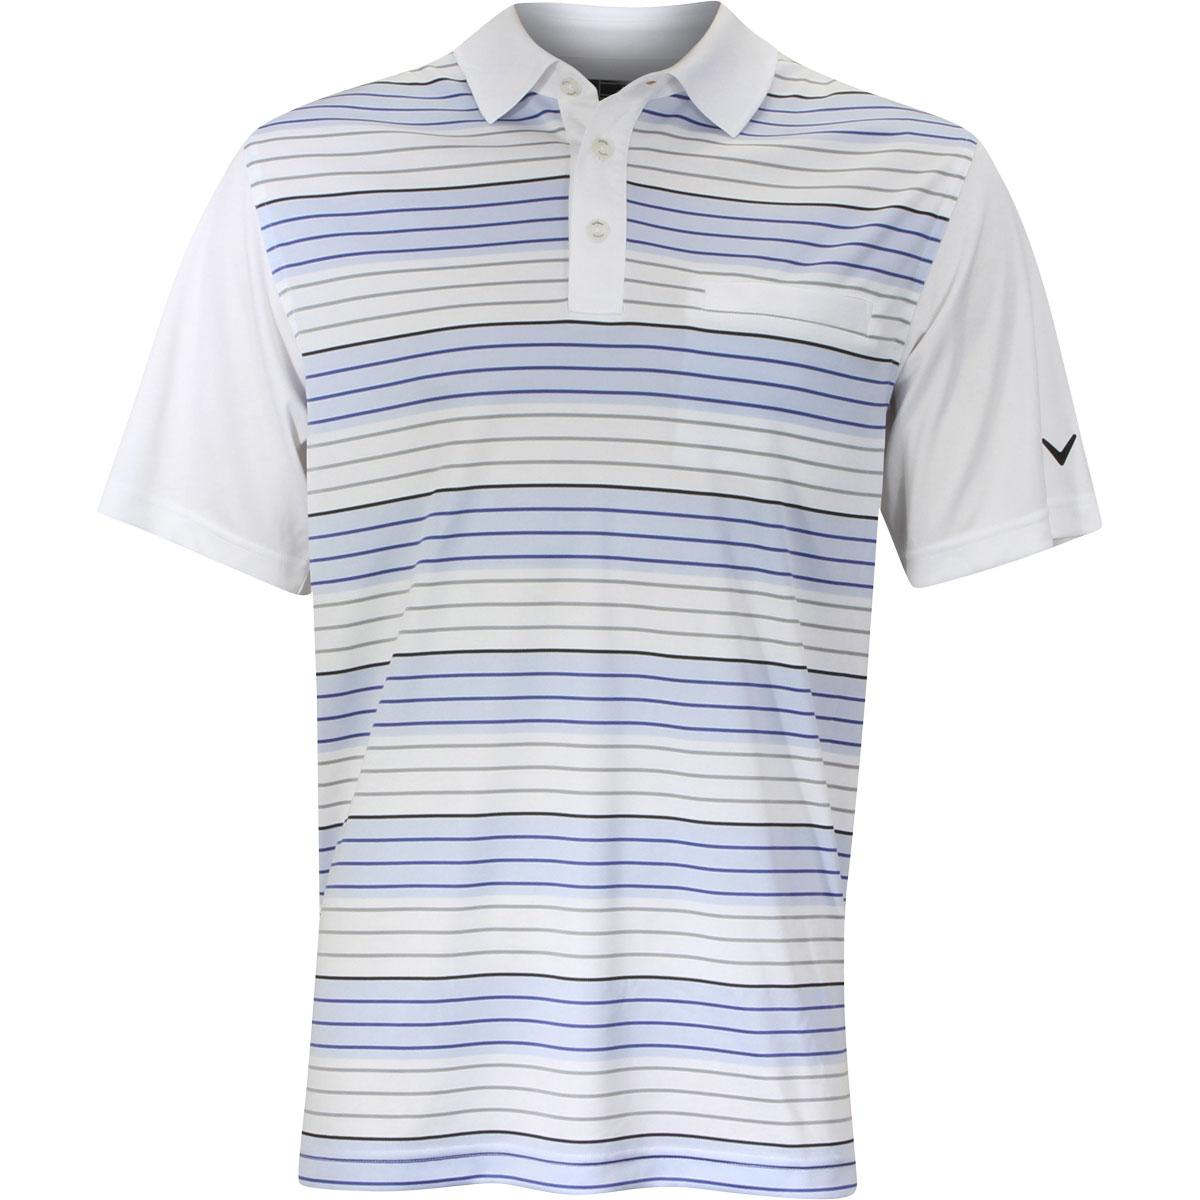 Image of Callaway Men's Road Map Striped Golf Polo Short Sleeve Shirt - Bright White - Classic Fit